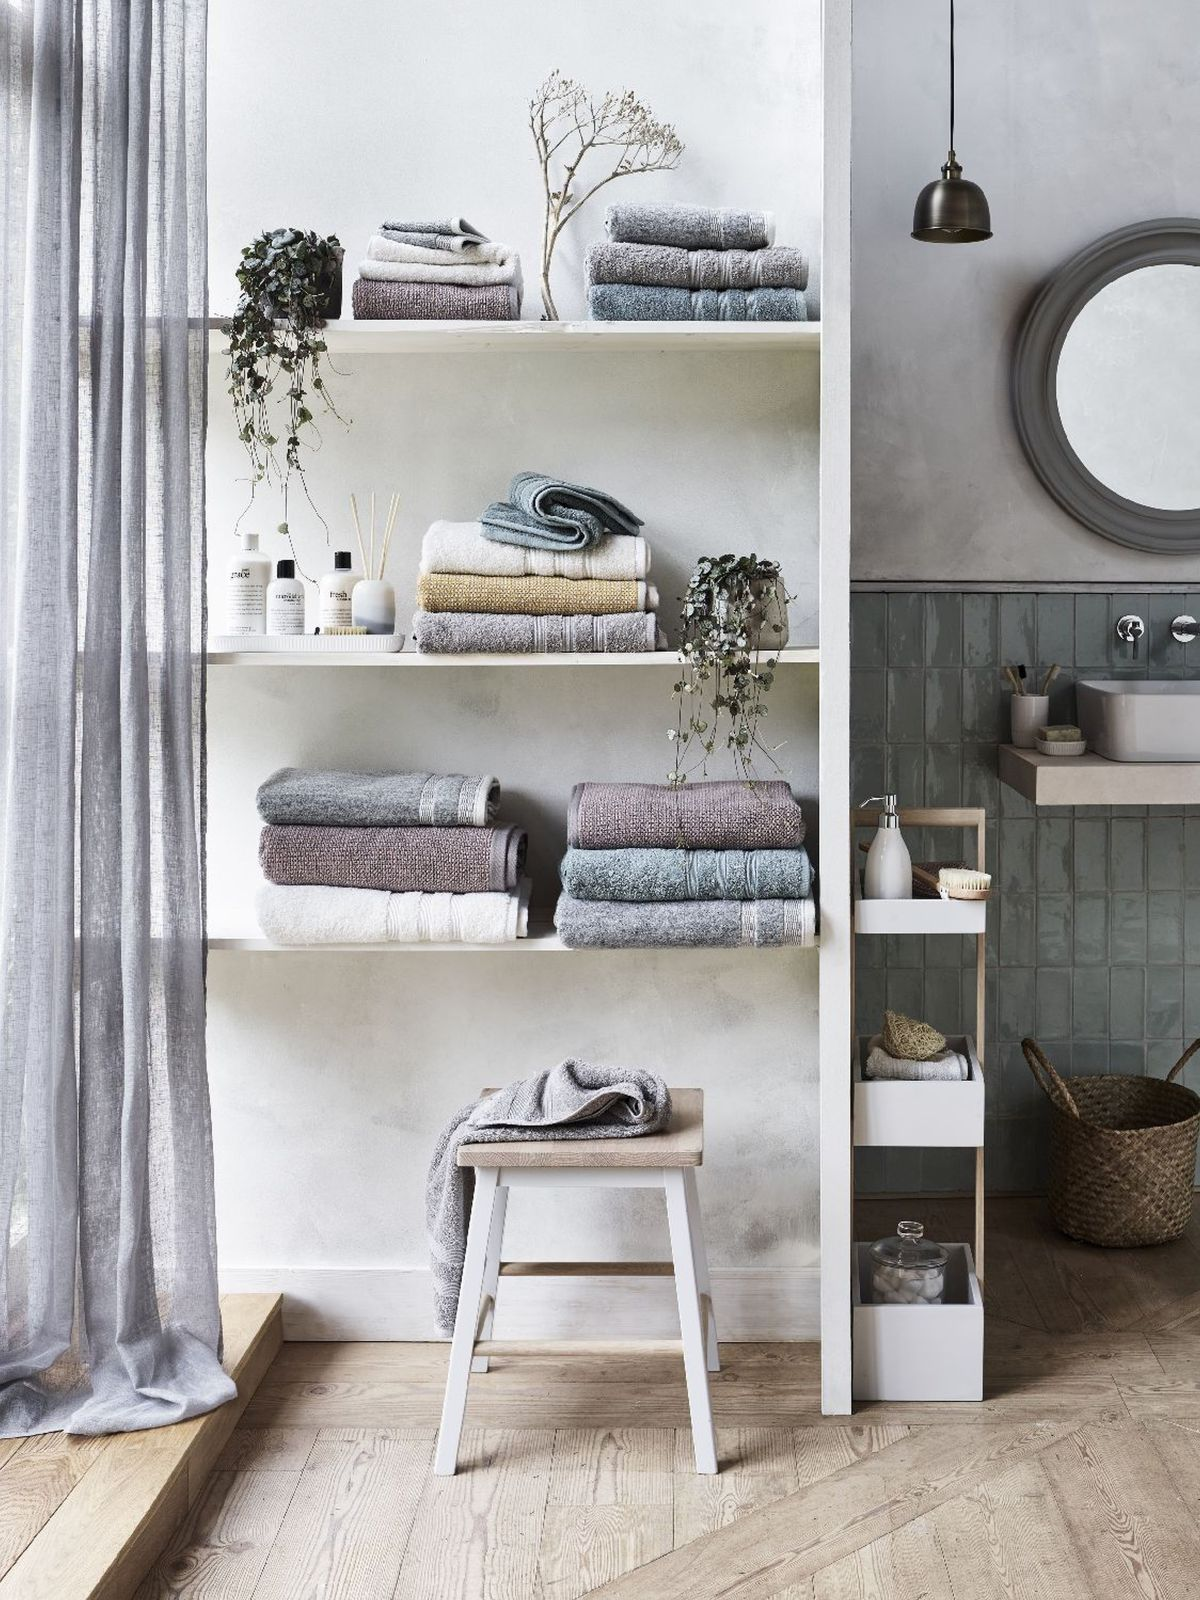 Small bathroom storage ideas: 16 ways to clear the clutter ...